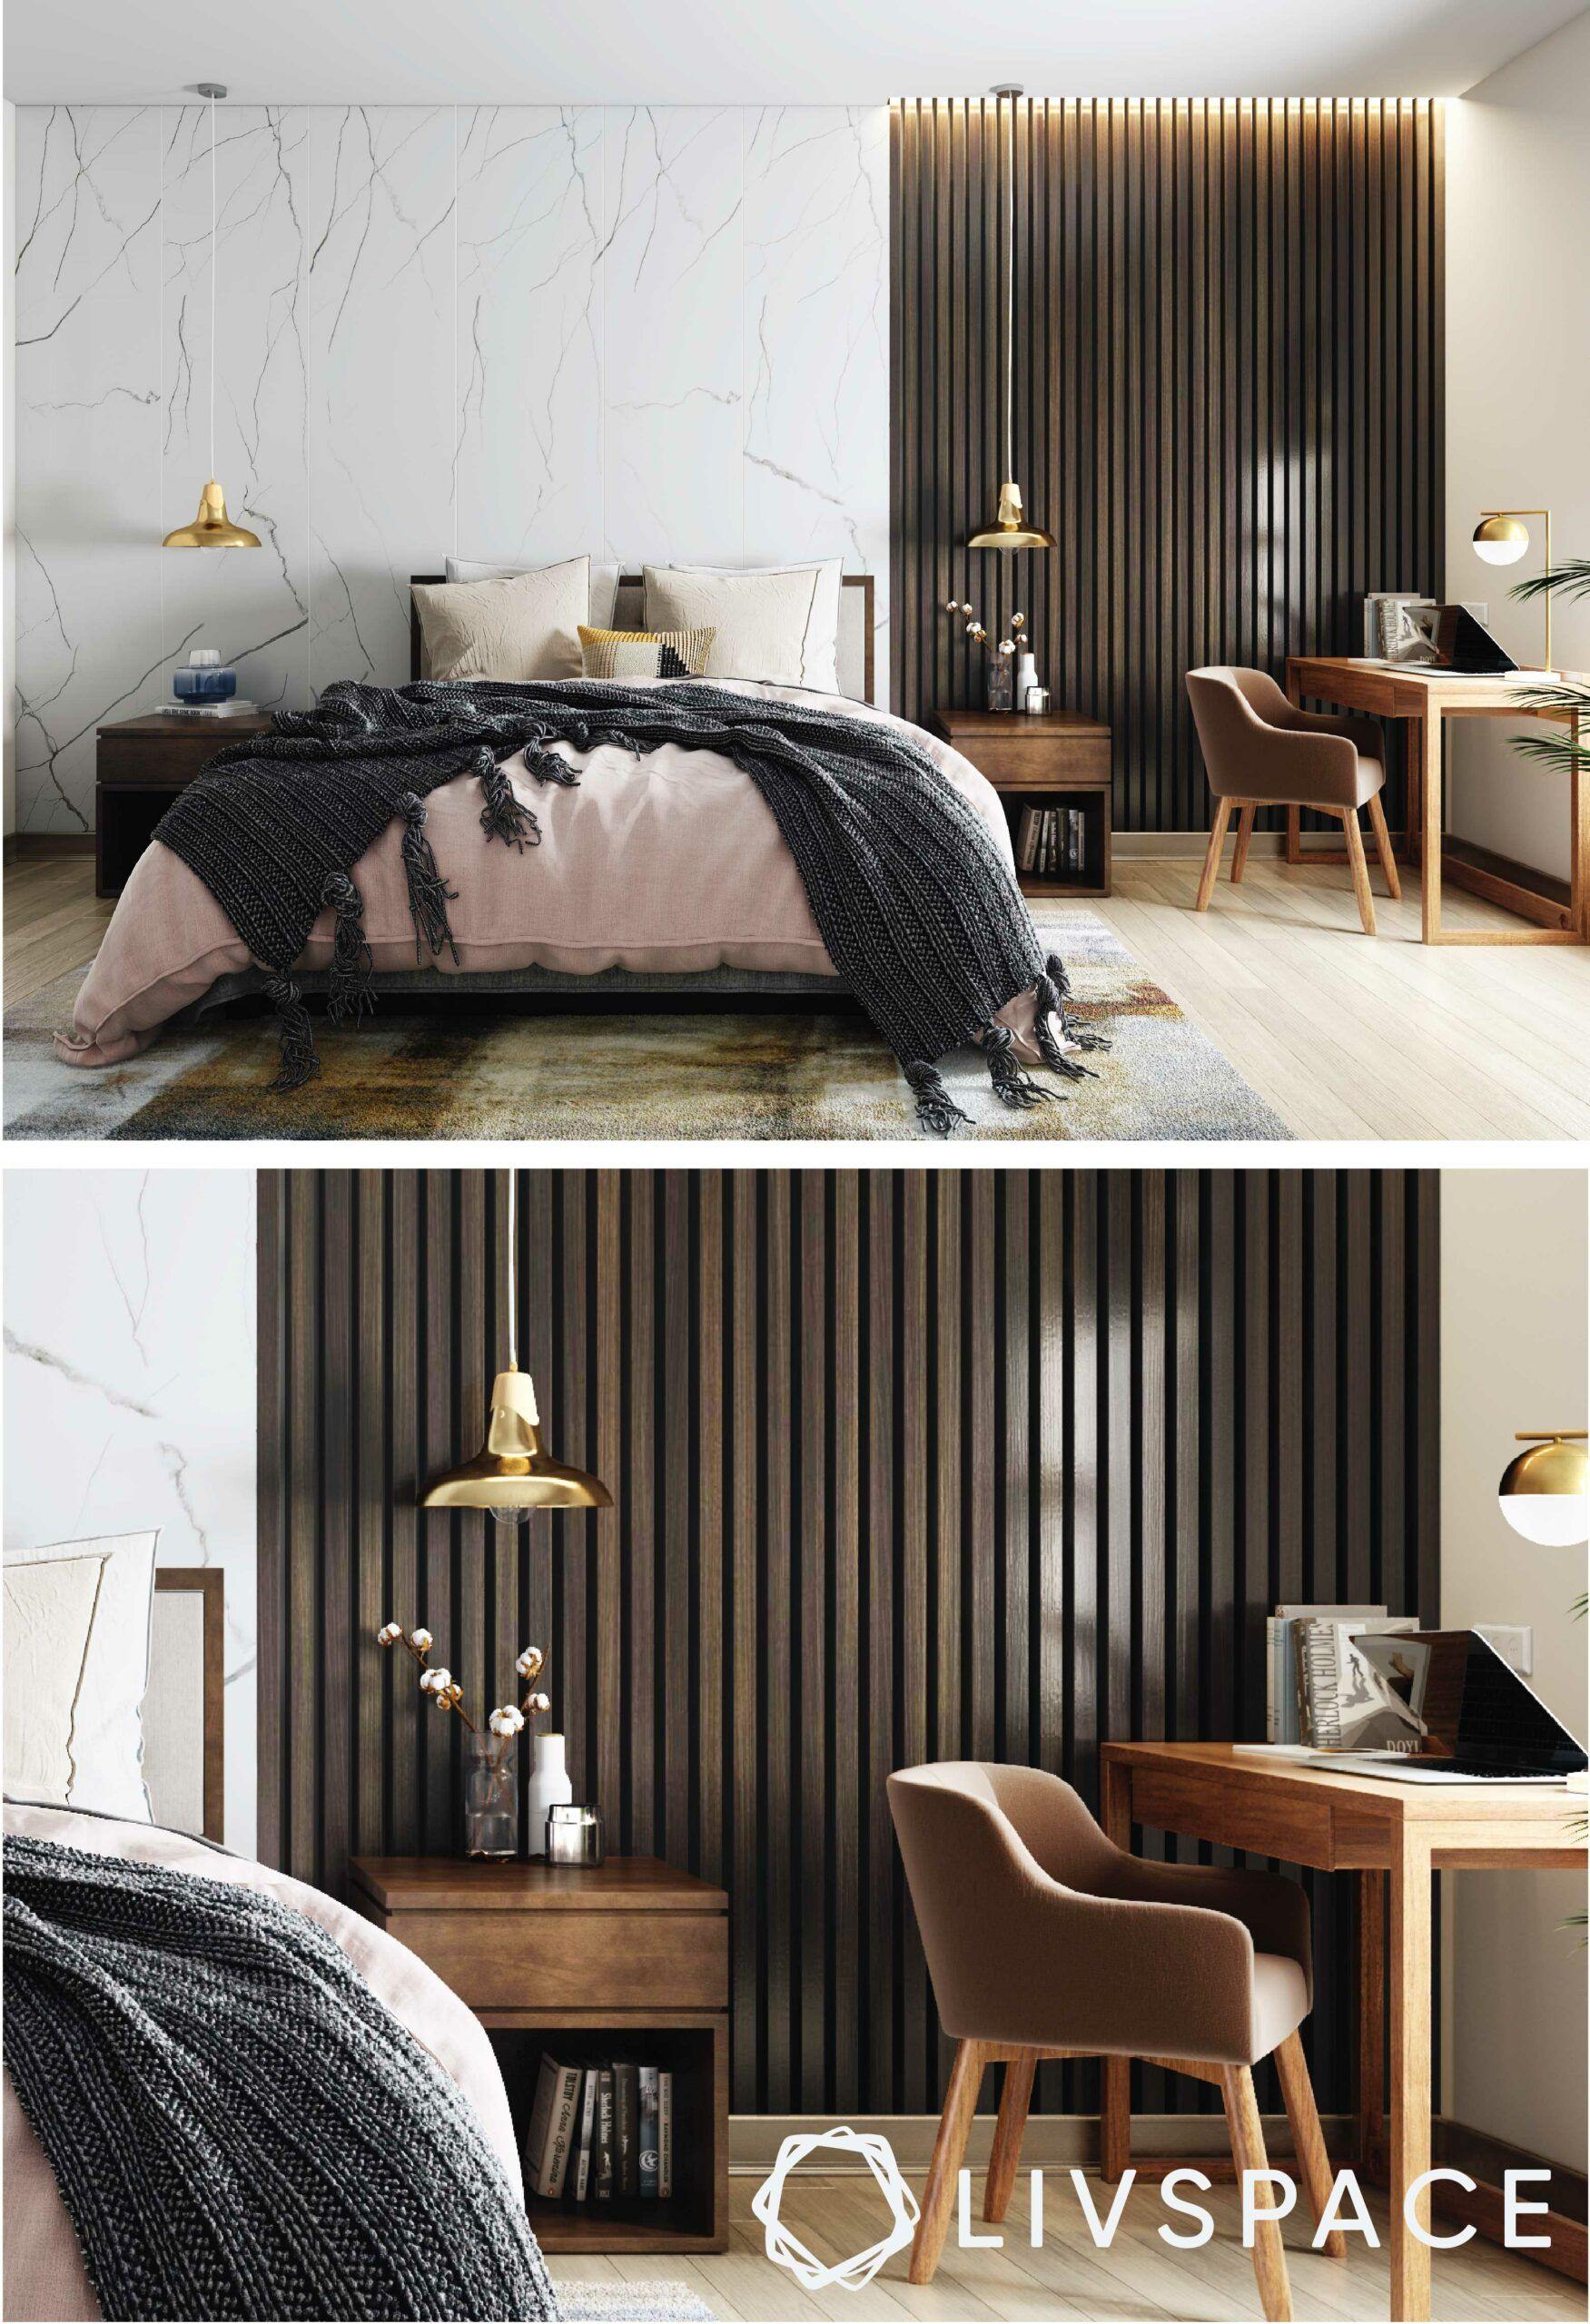 marble-wall-cladding-study-nook-bedroom